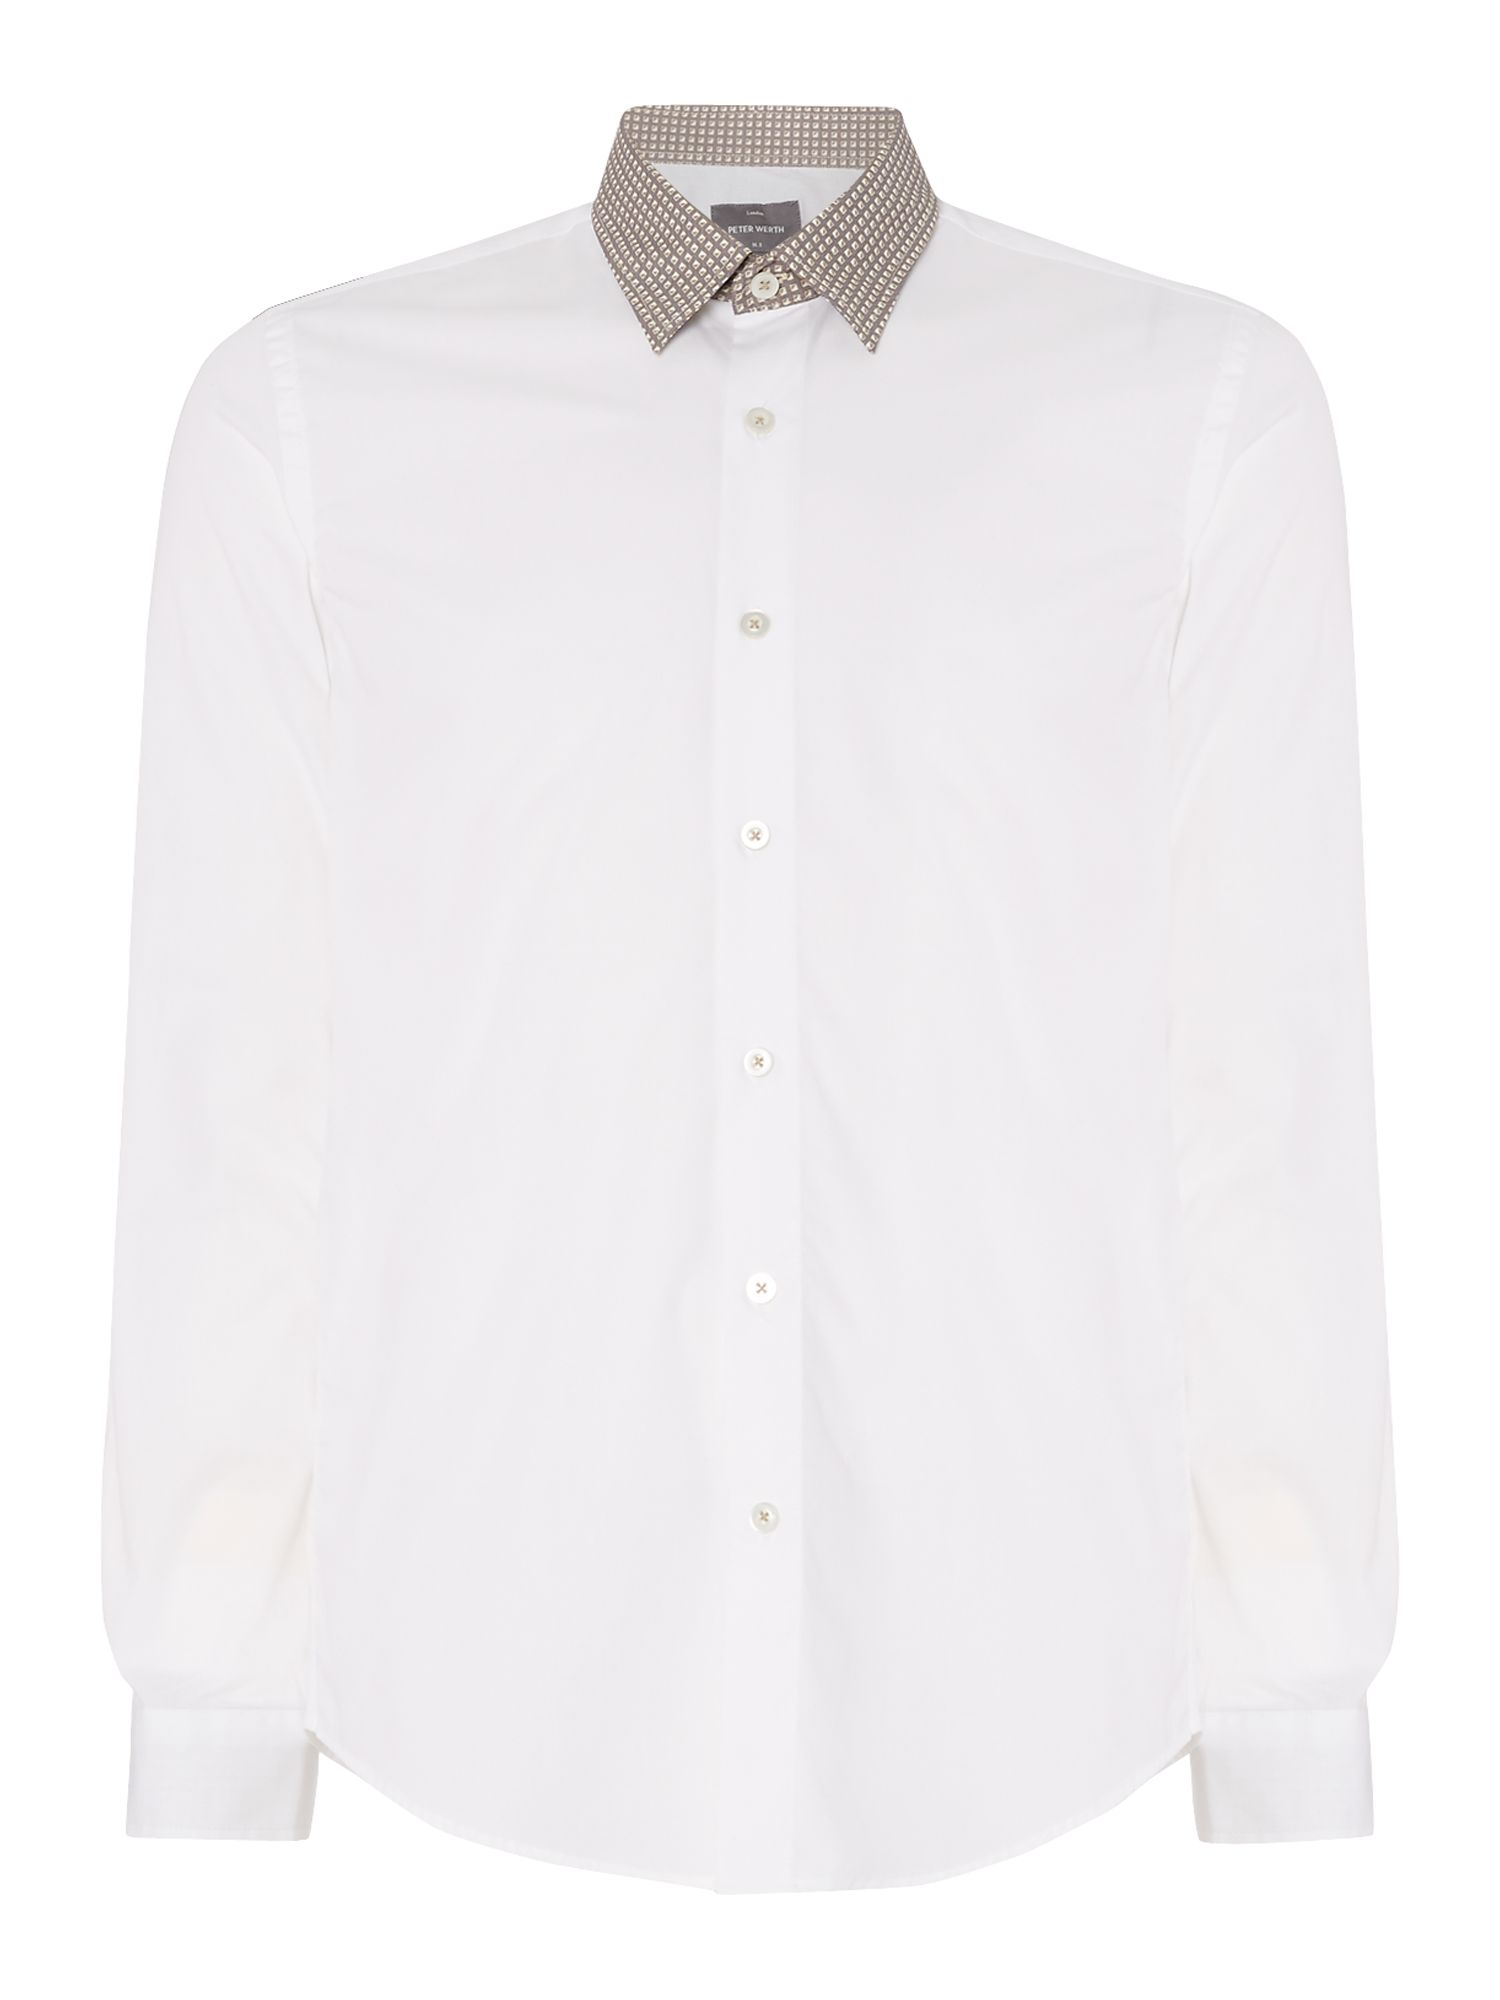 Chuck concealed button down collar shirt